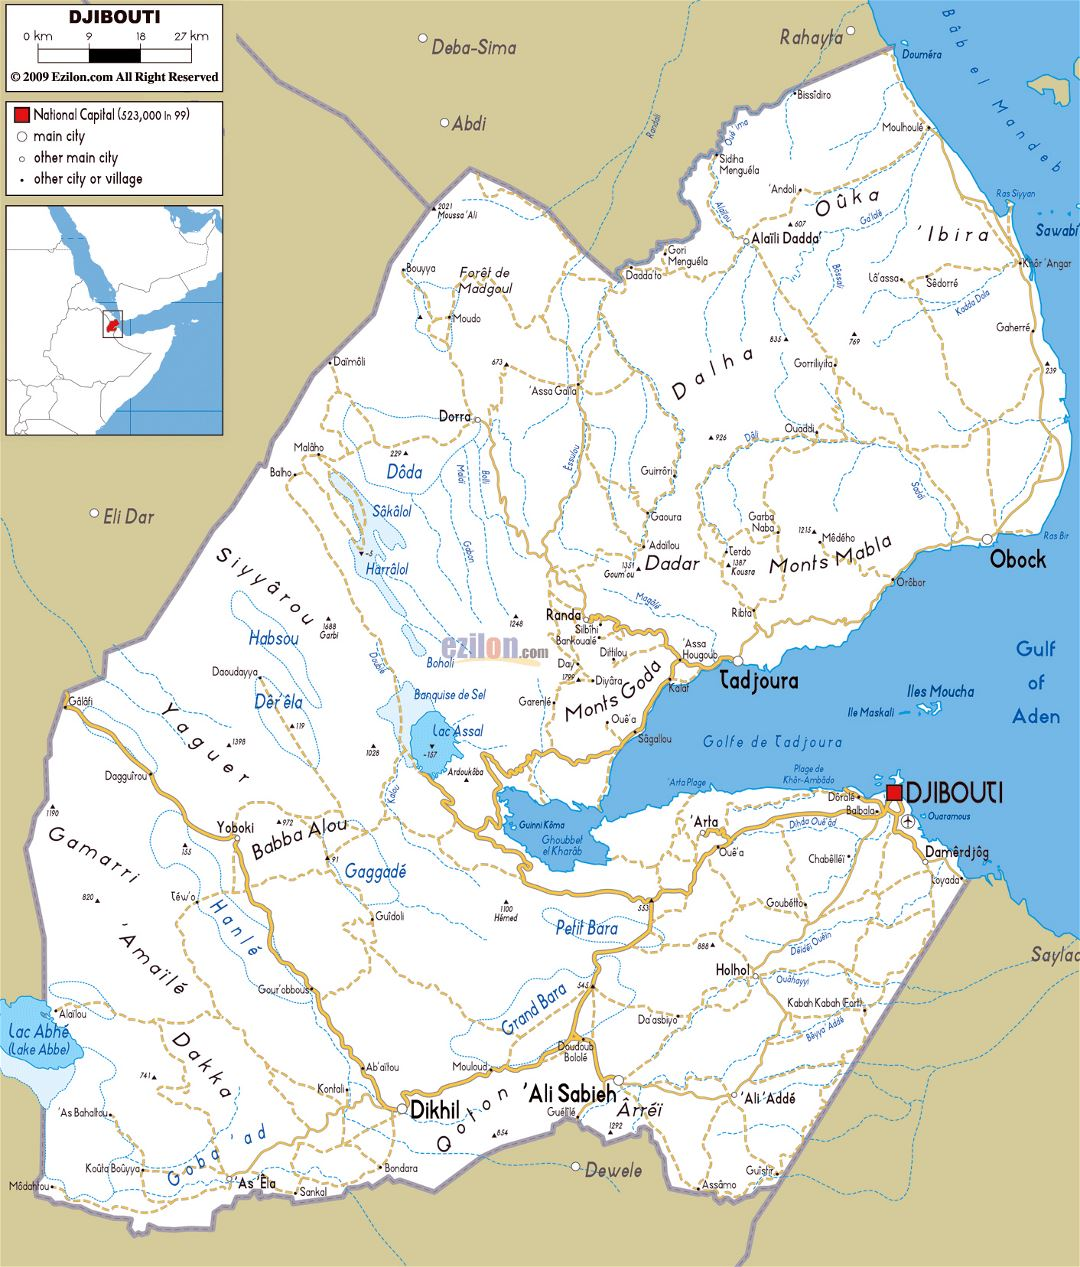 Large road map of Djibouti with cities and airports